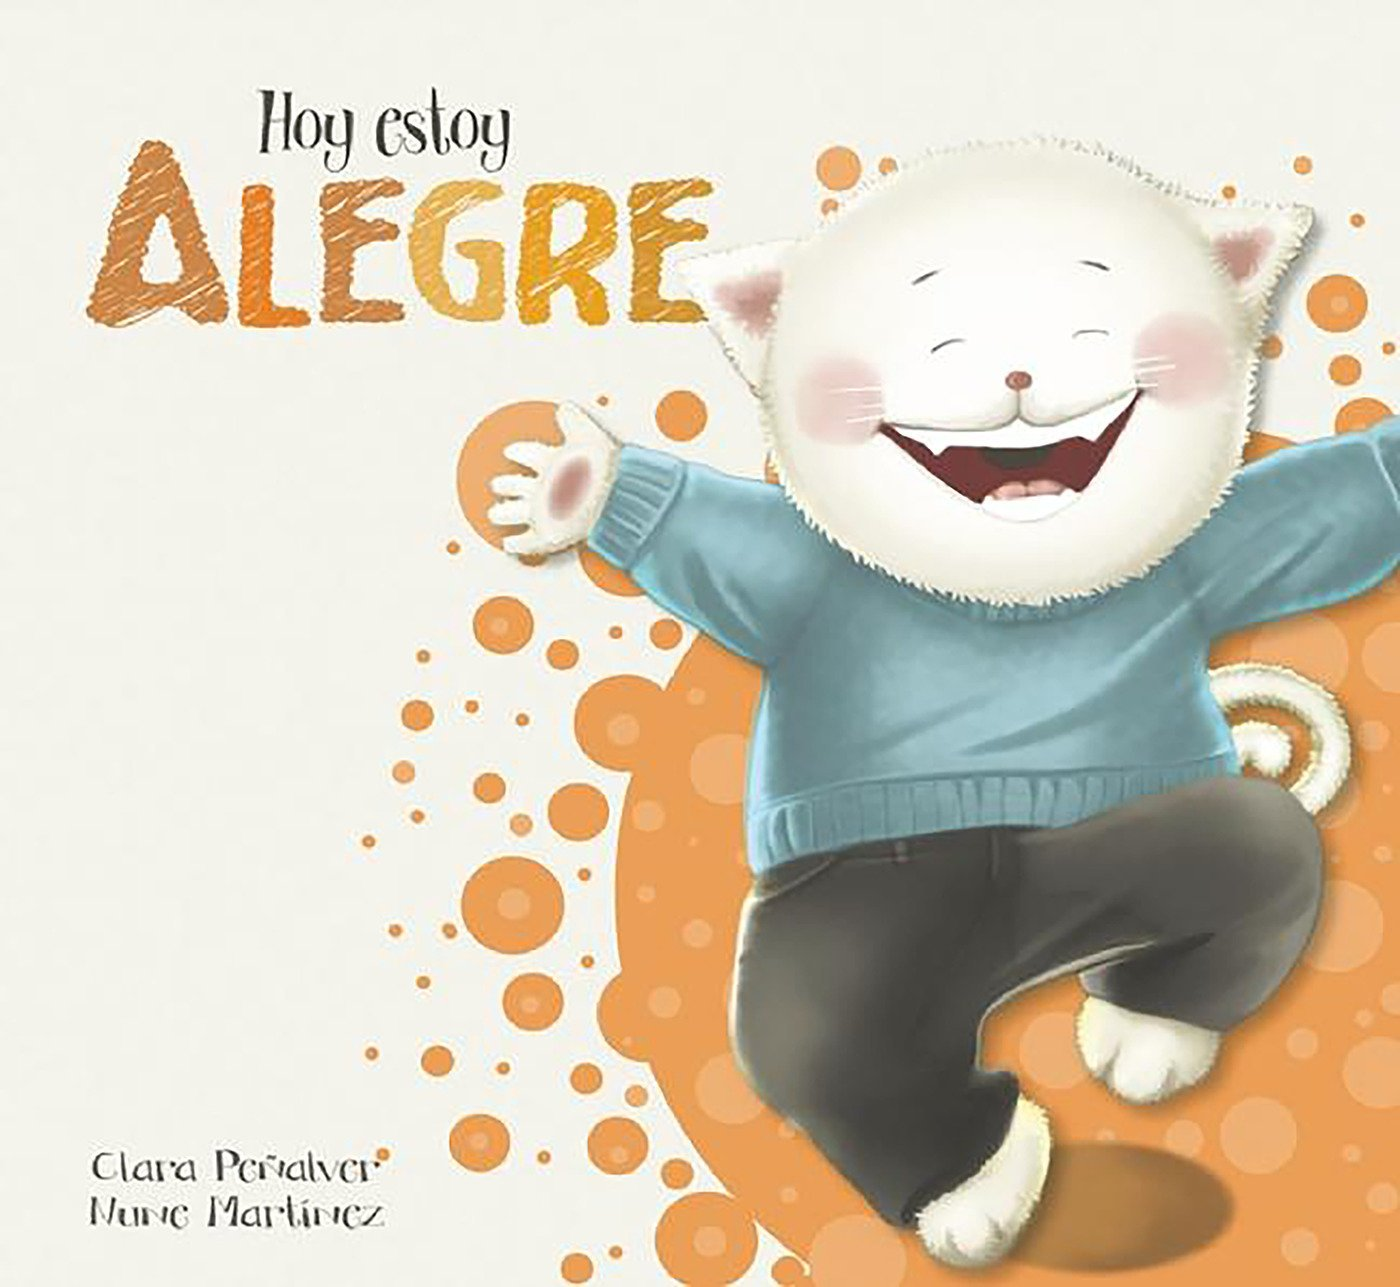 Hoy estoy... Alegre / Today I Feel Happy (Spanish Edition): Clara Penalver: 9788448845568: Amazon.com: Books